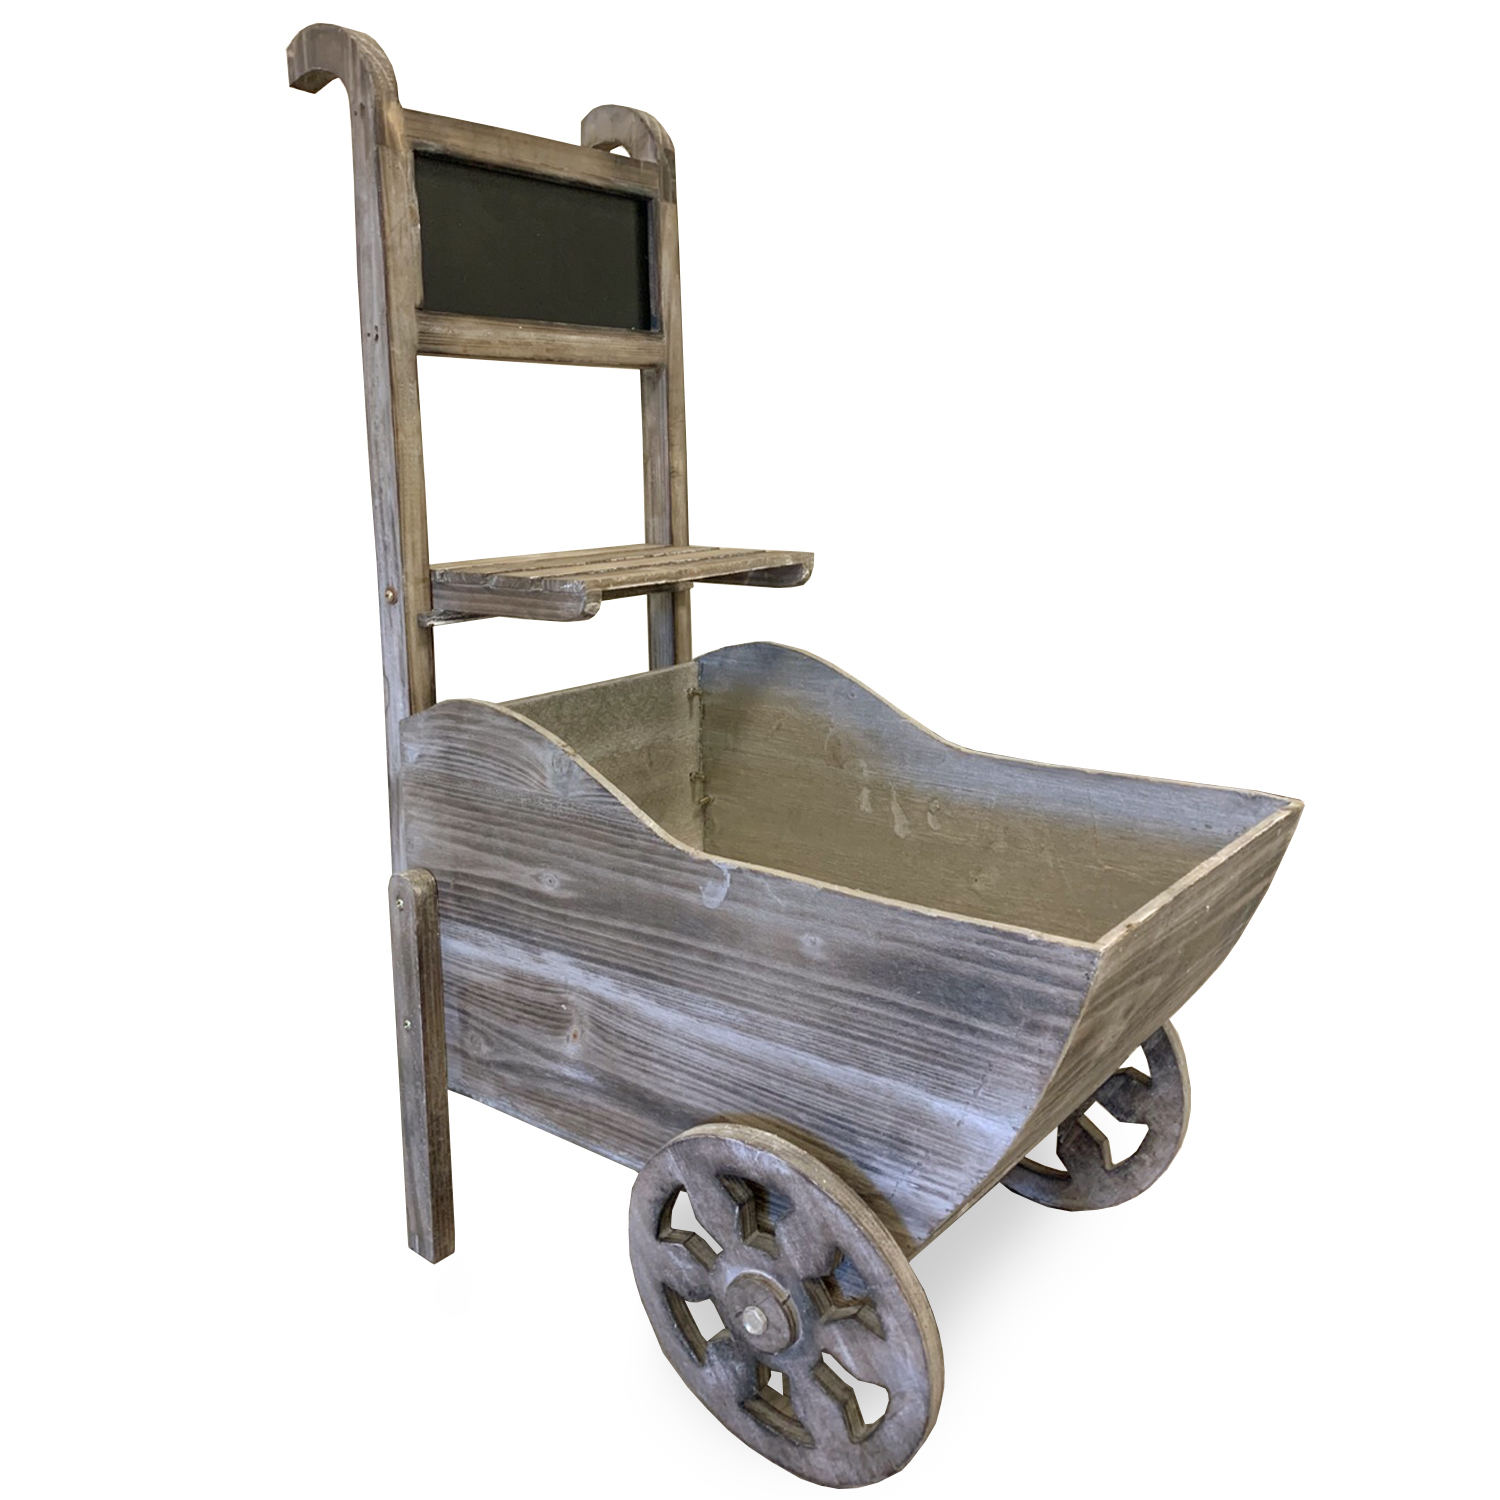 Wooden Store Display Cart with Chalkboard Antique Grey Wash